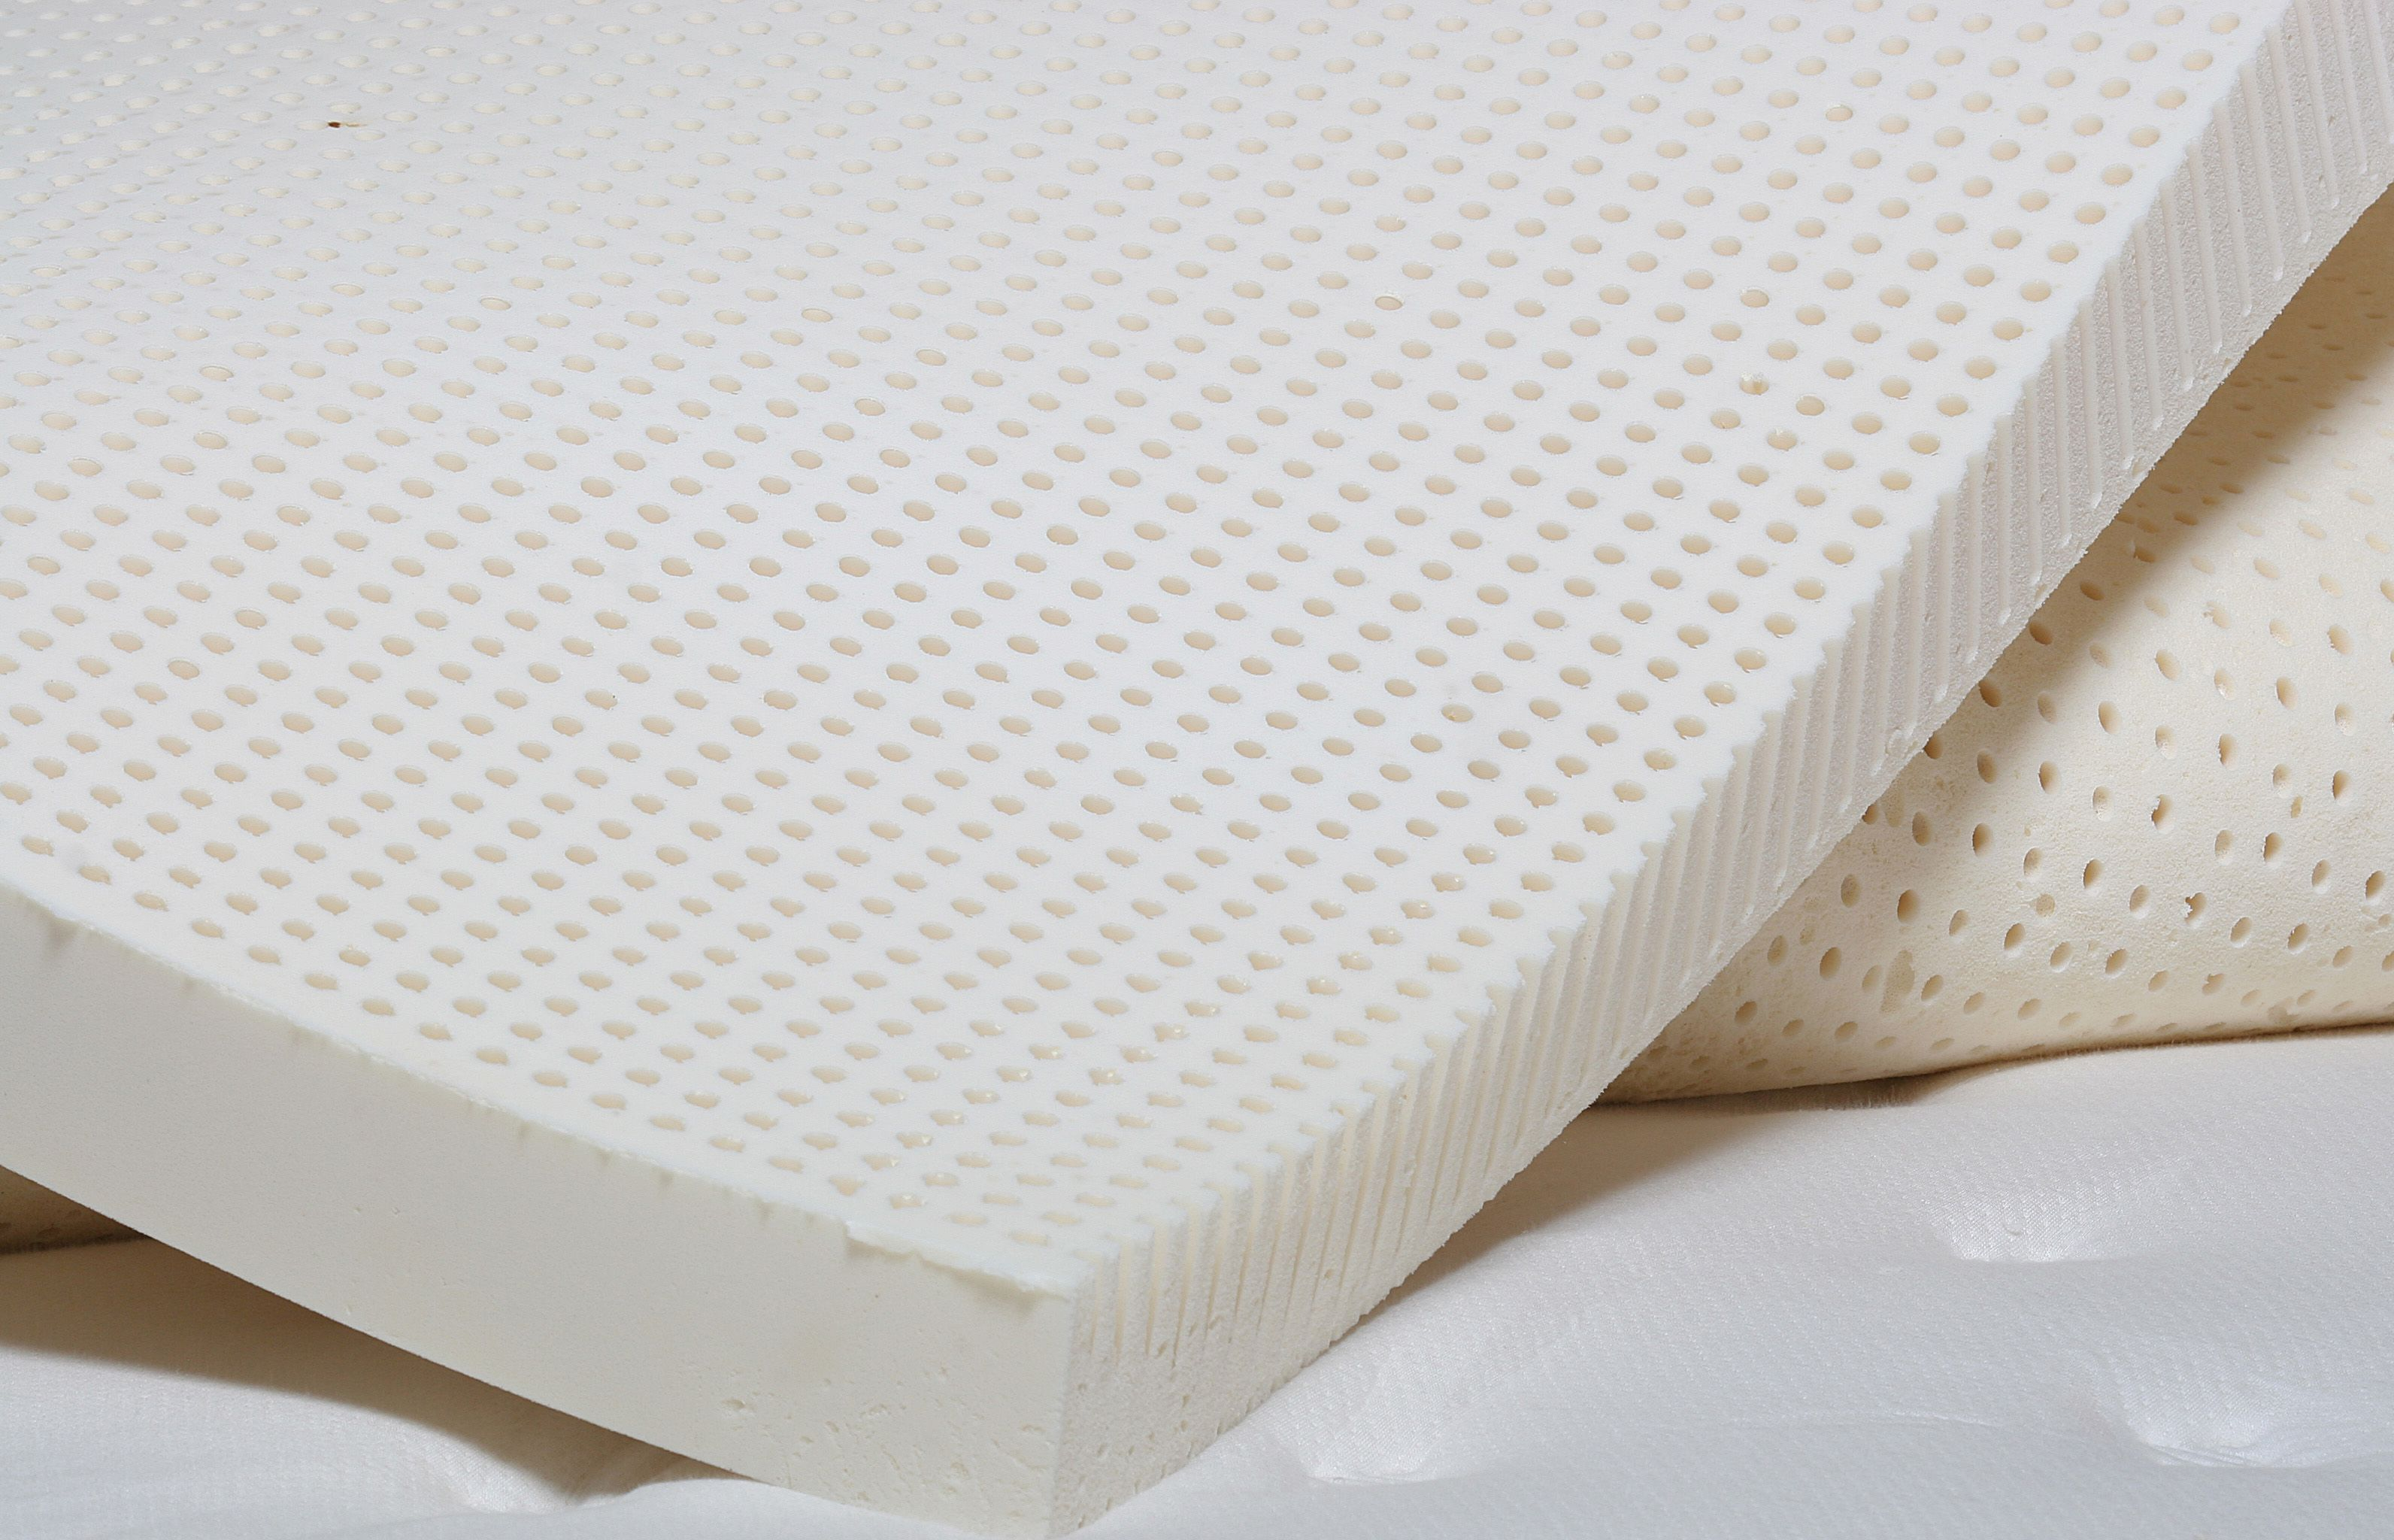 Latex Foam Mattress Pin By Housefurniture On Bathroom Furniture Latex Mattress Baby